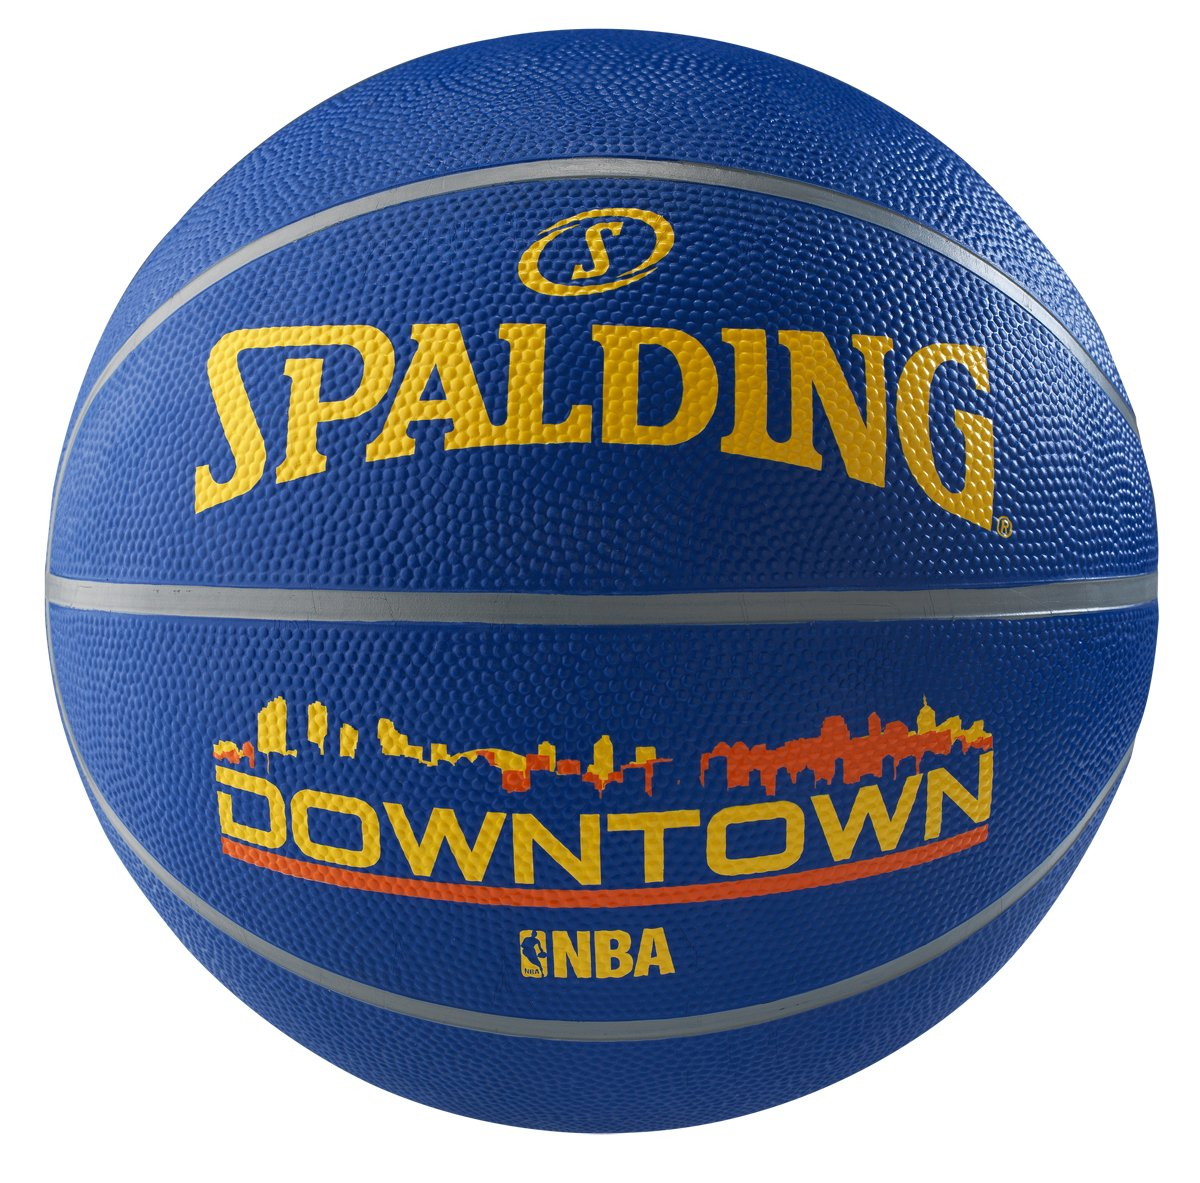 Spalding Down Town Basketball, Size 7 (Blue/Yellow)